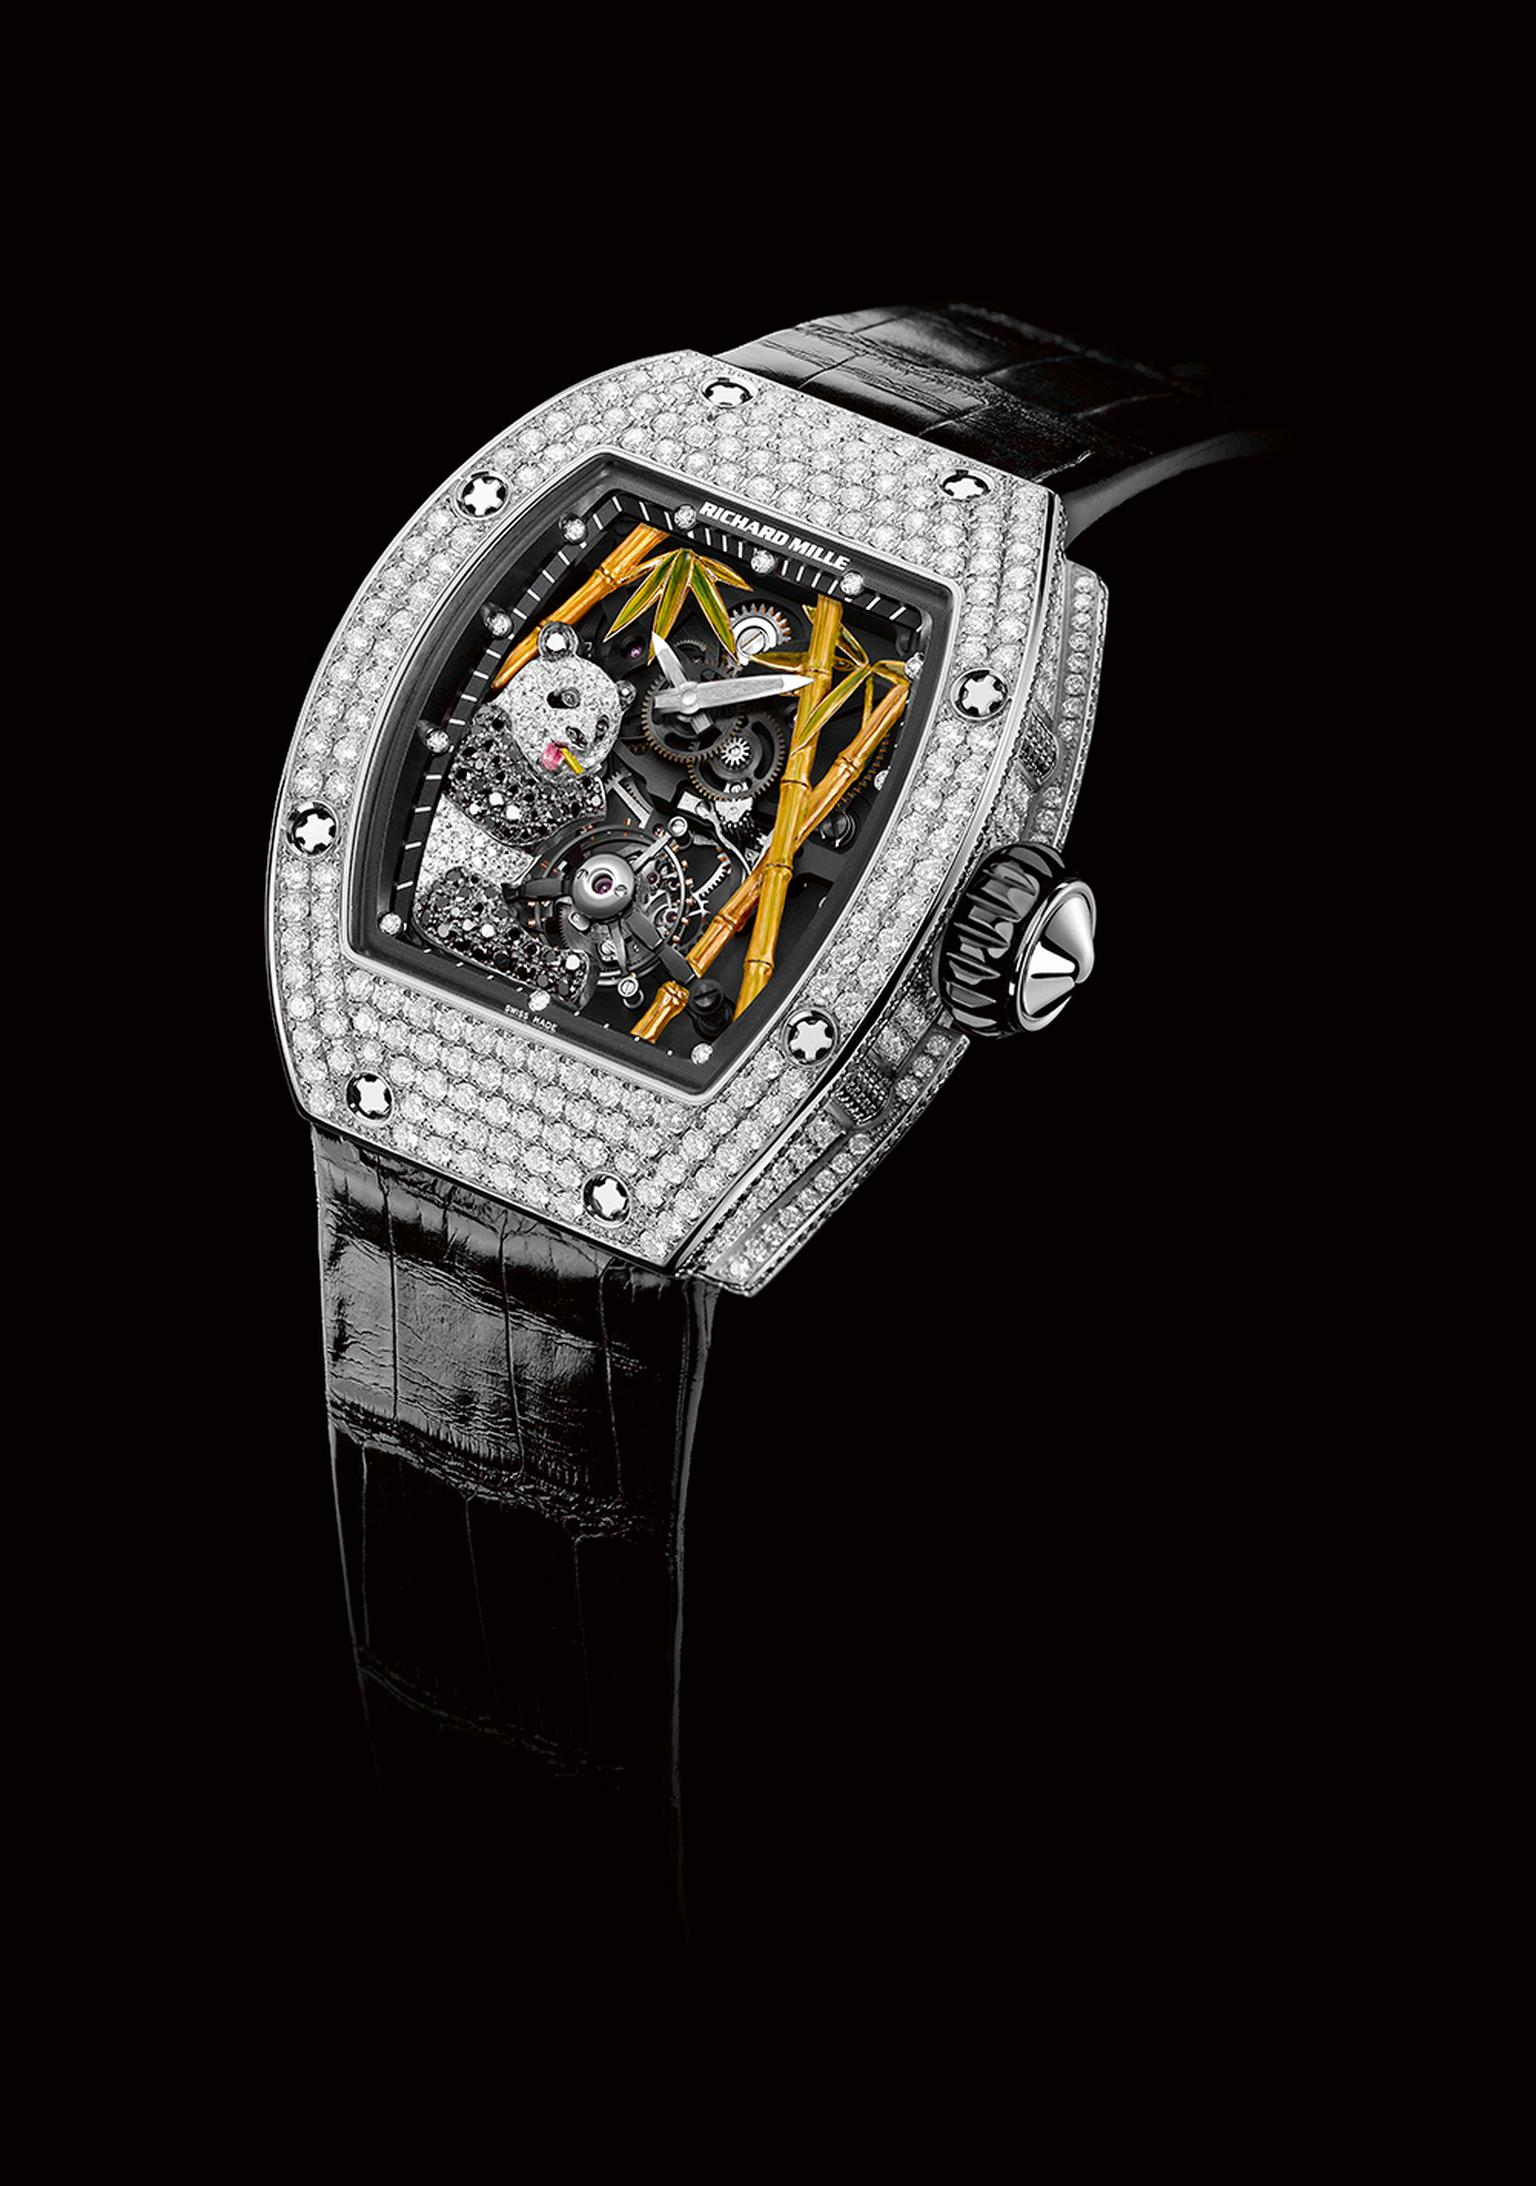 RichardMille2601front.jpg